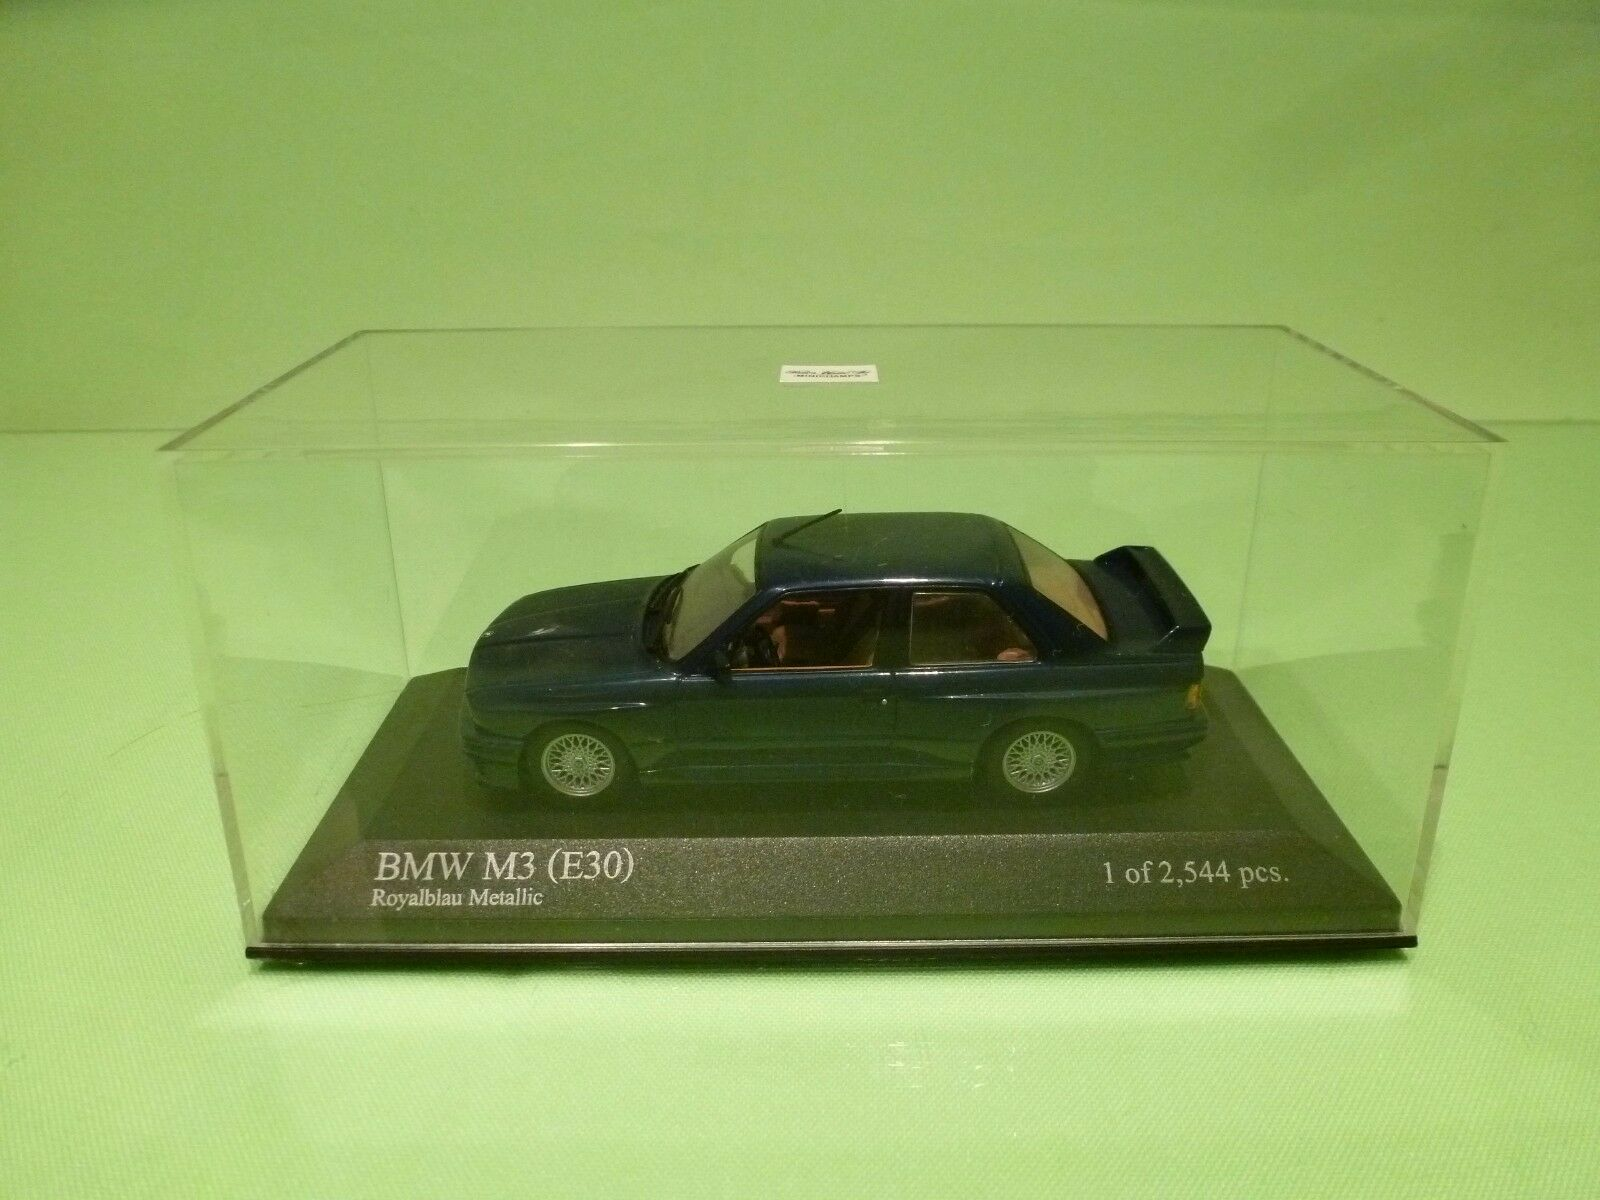 MINICHAMPS BMW M3 E30 - ULTRA RARE METALLIC ROYAL bleu 1 43 - EXCELLENT IN BOX